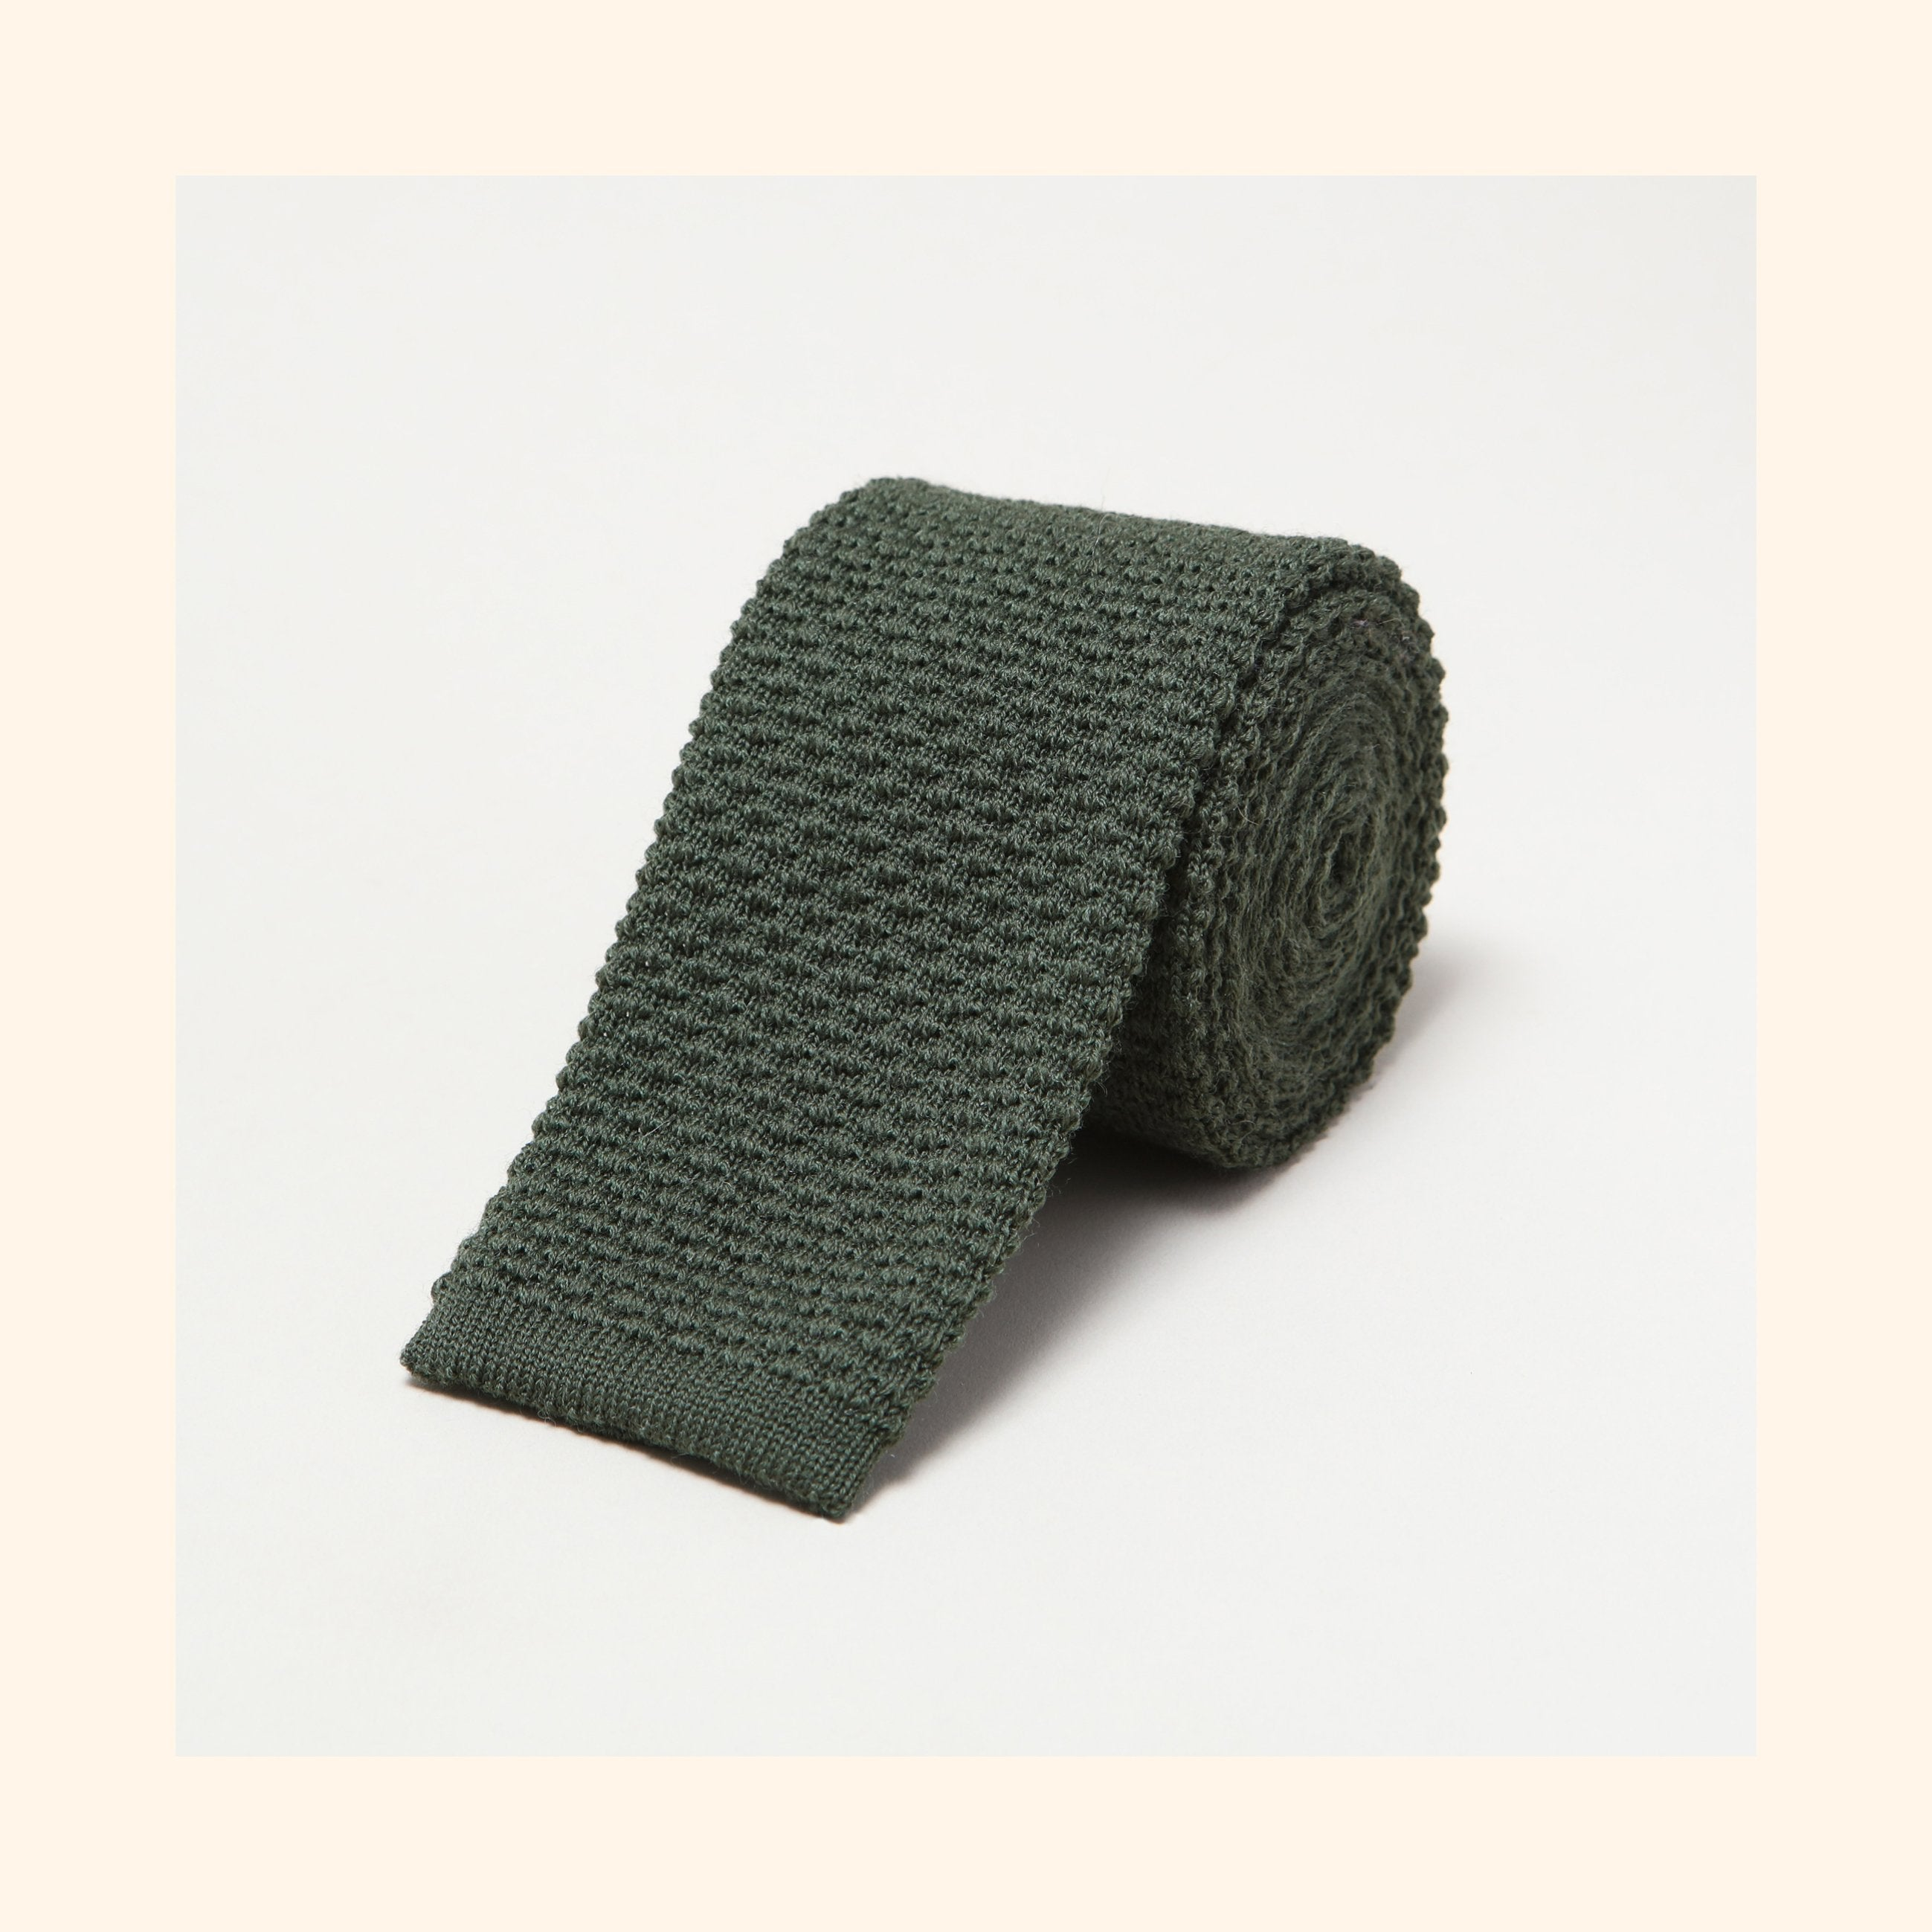 № 097 - Green Knitted Wool Tie